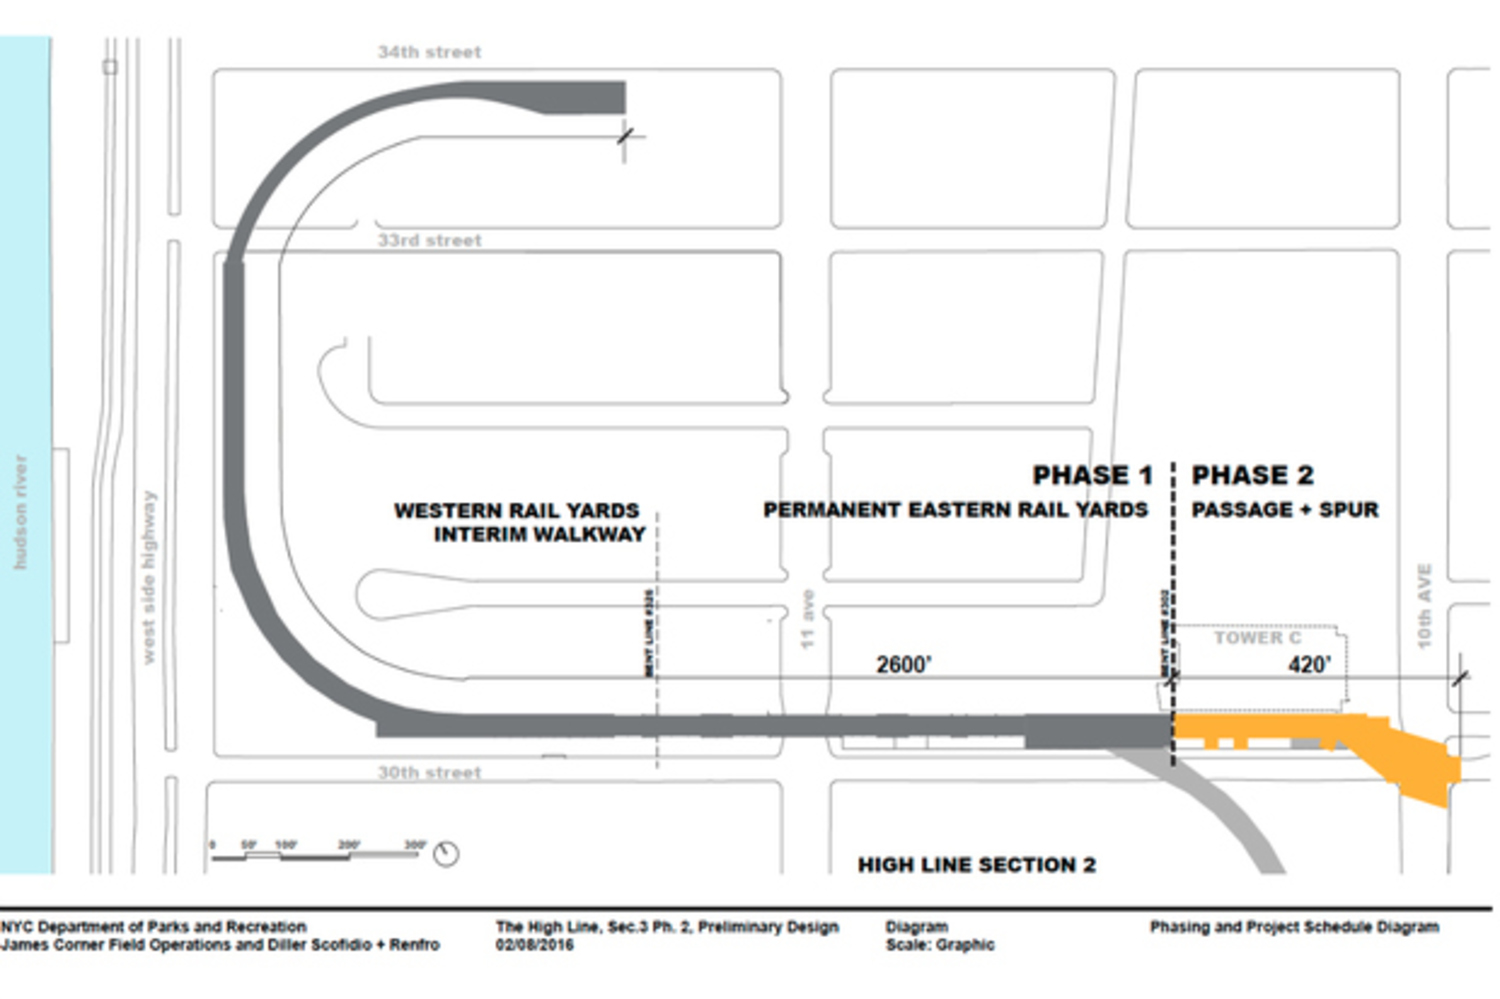 The yellow line represents the last portion of the High Line that will be renovated into a public park.